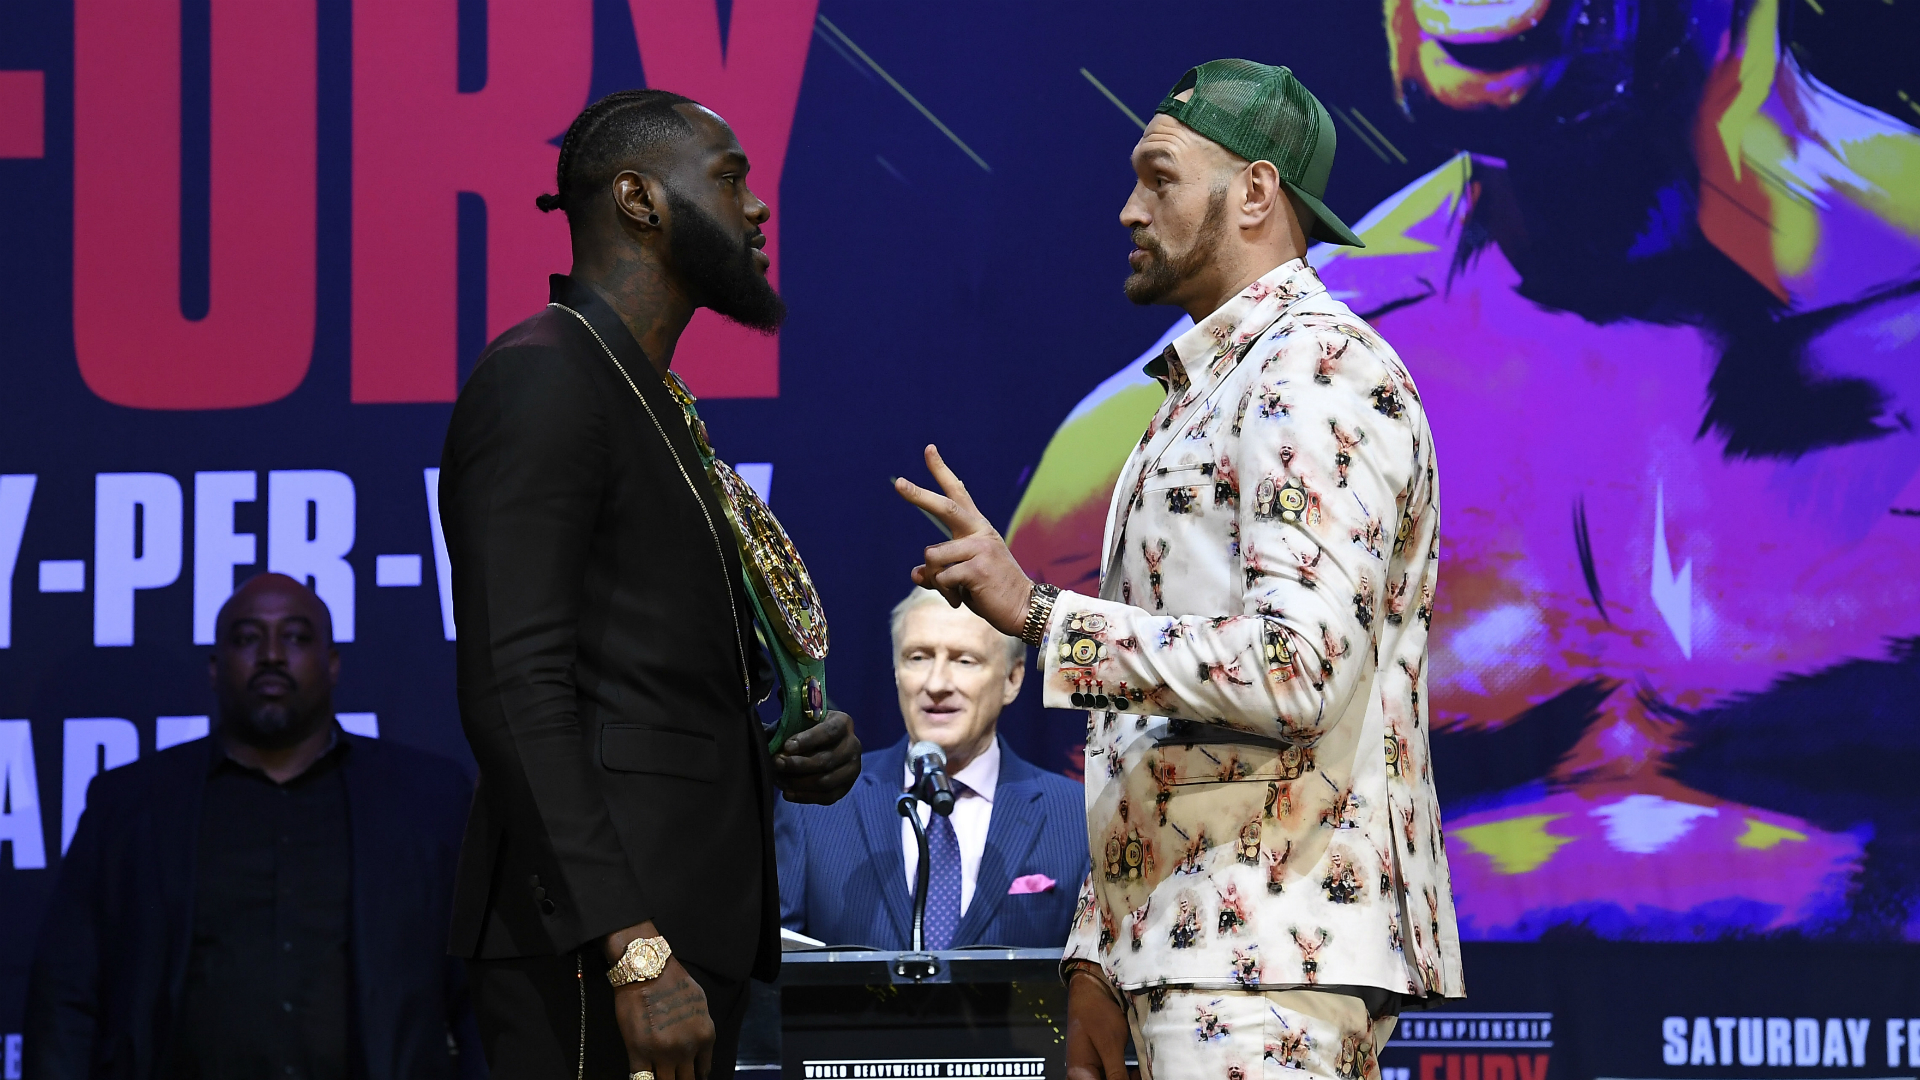 Wilder v Fury II: Joshua, Tyson, Foreman and other experts predict the fight